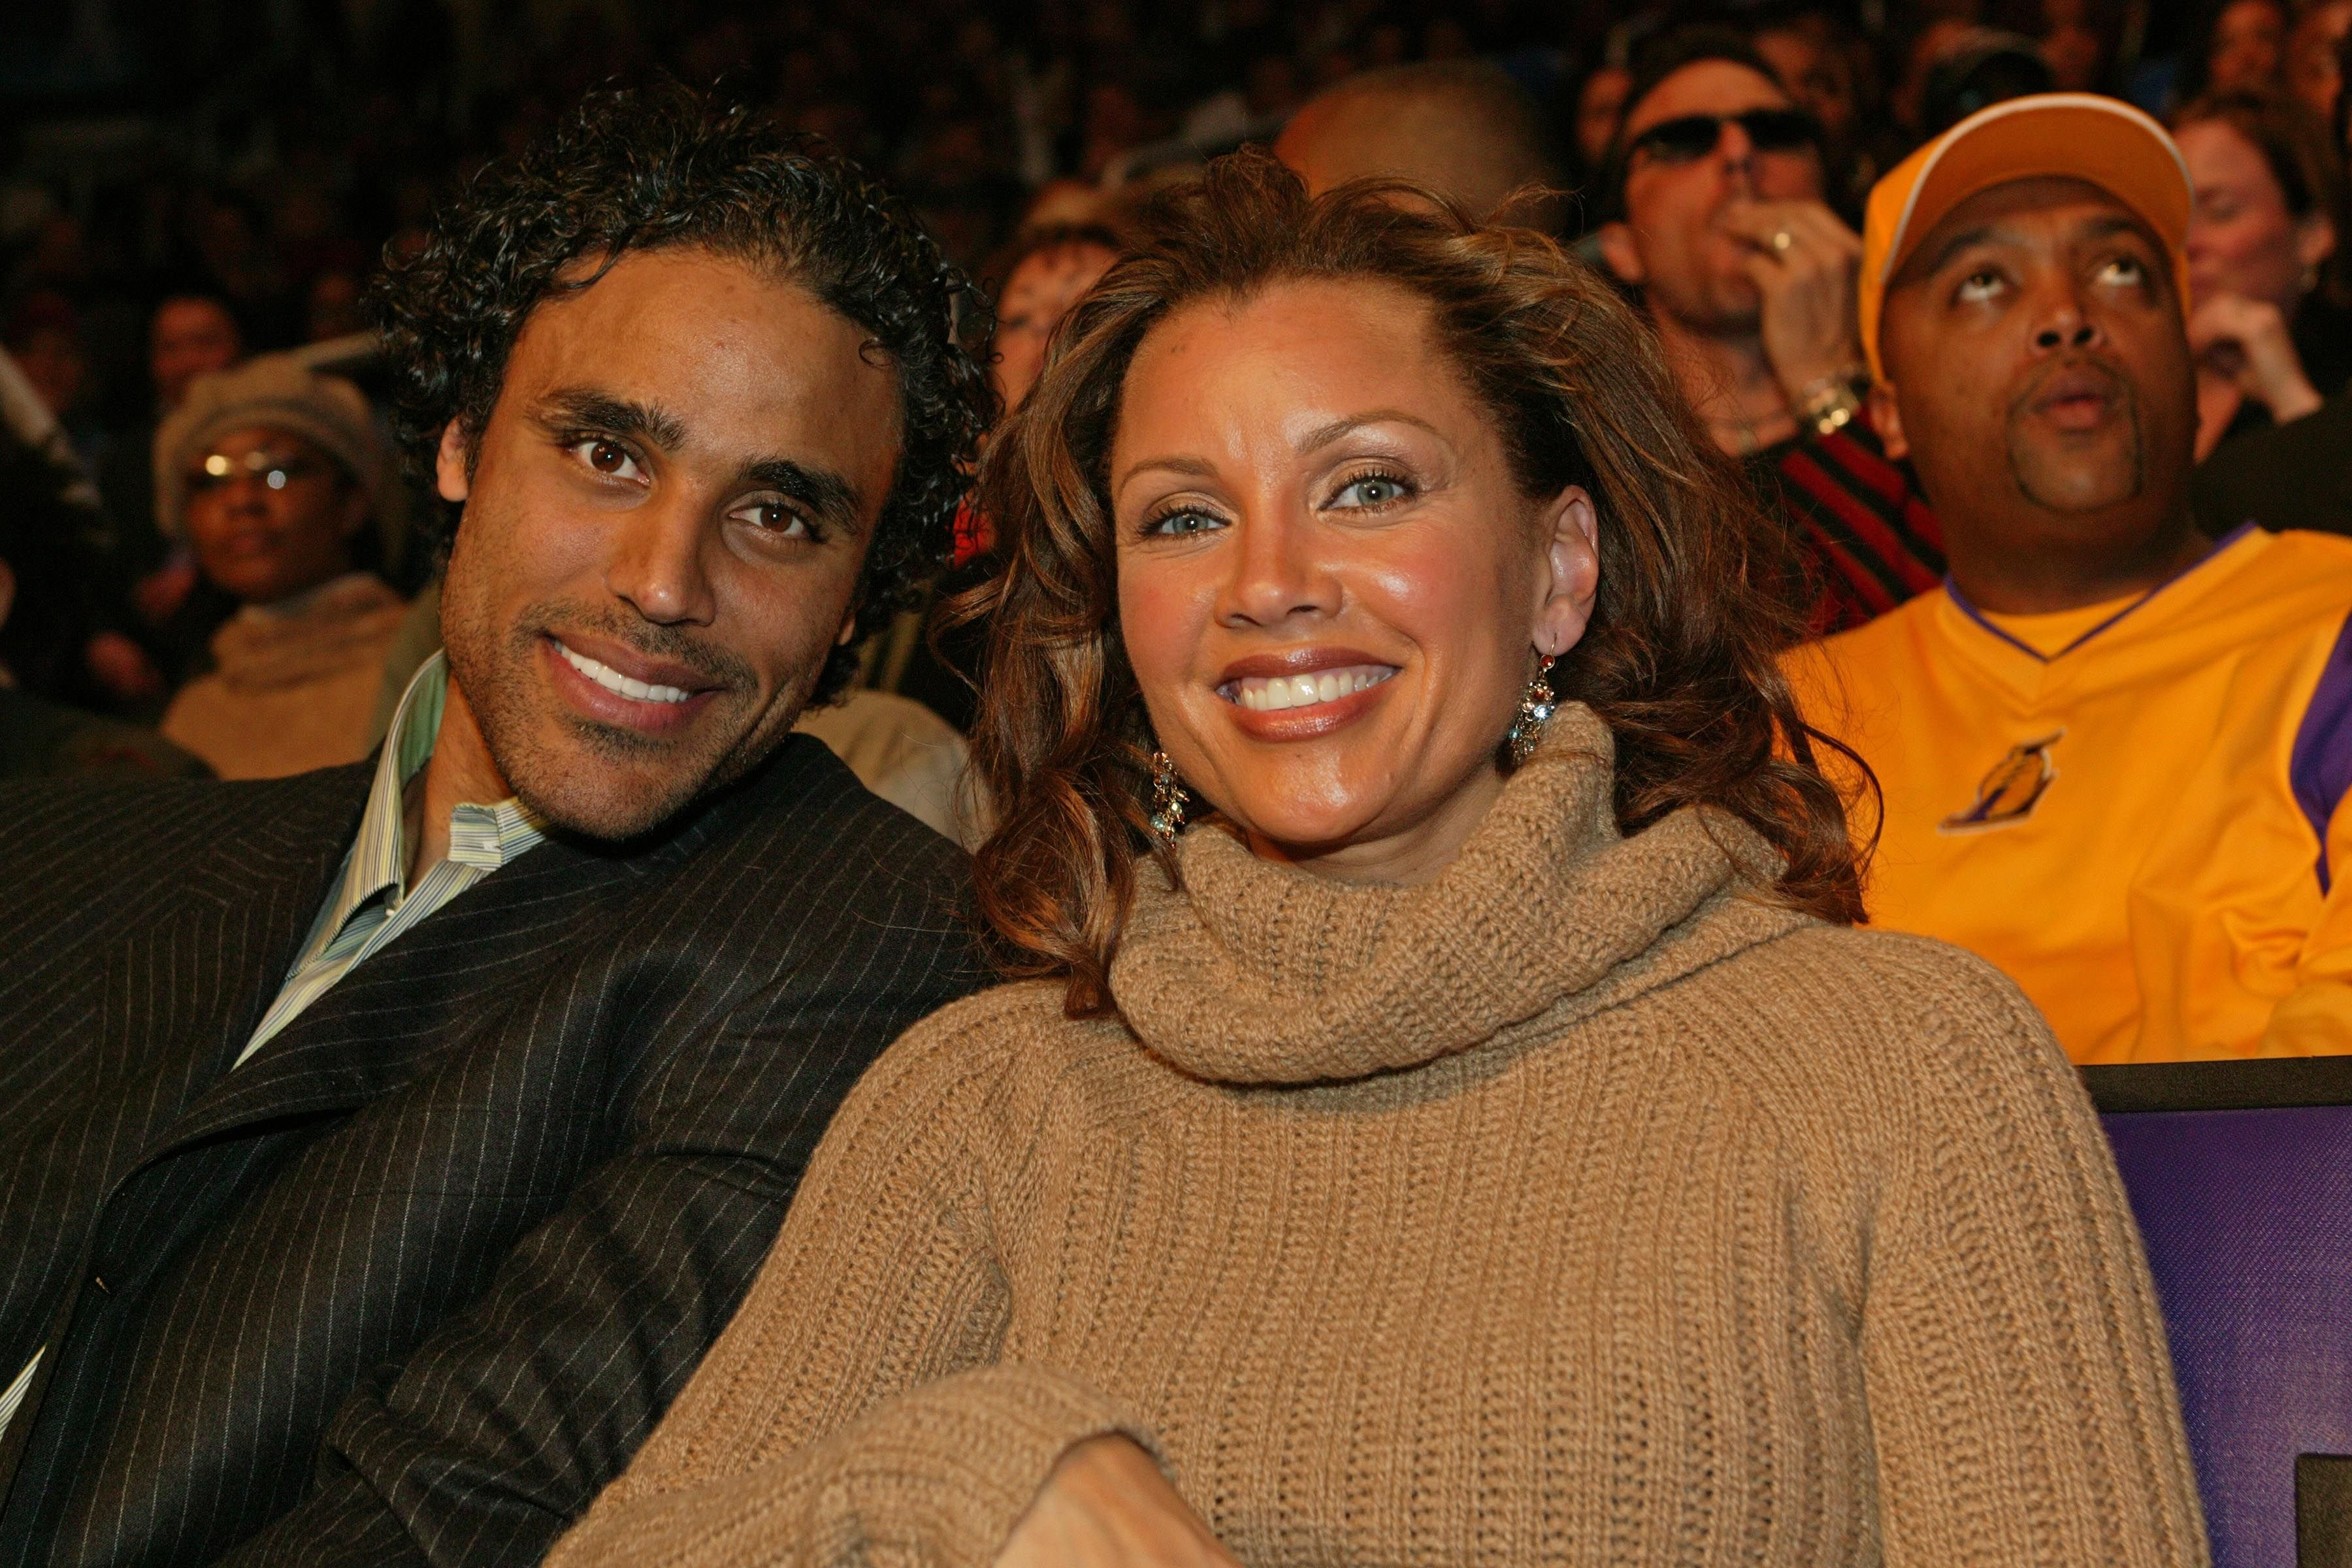 Rick Fox and Vanessa Williams pose for a photo during the All Star Game as part of 2004 NBA All Star Weekend on February 15, 2004   Photo: Getty images